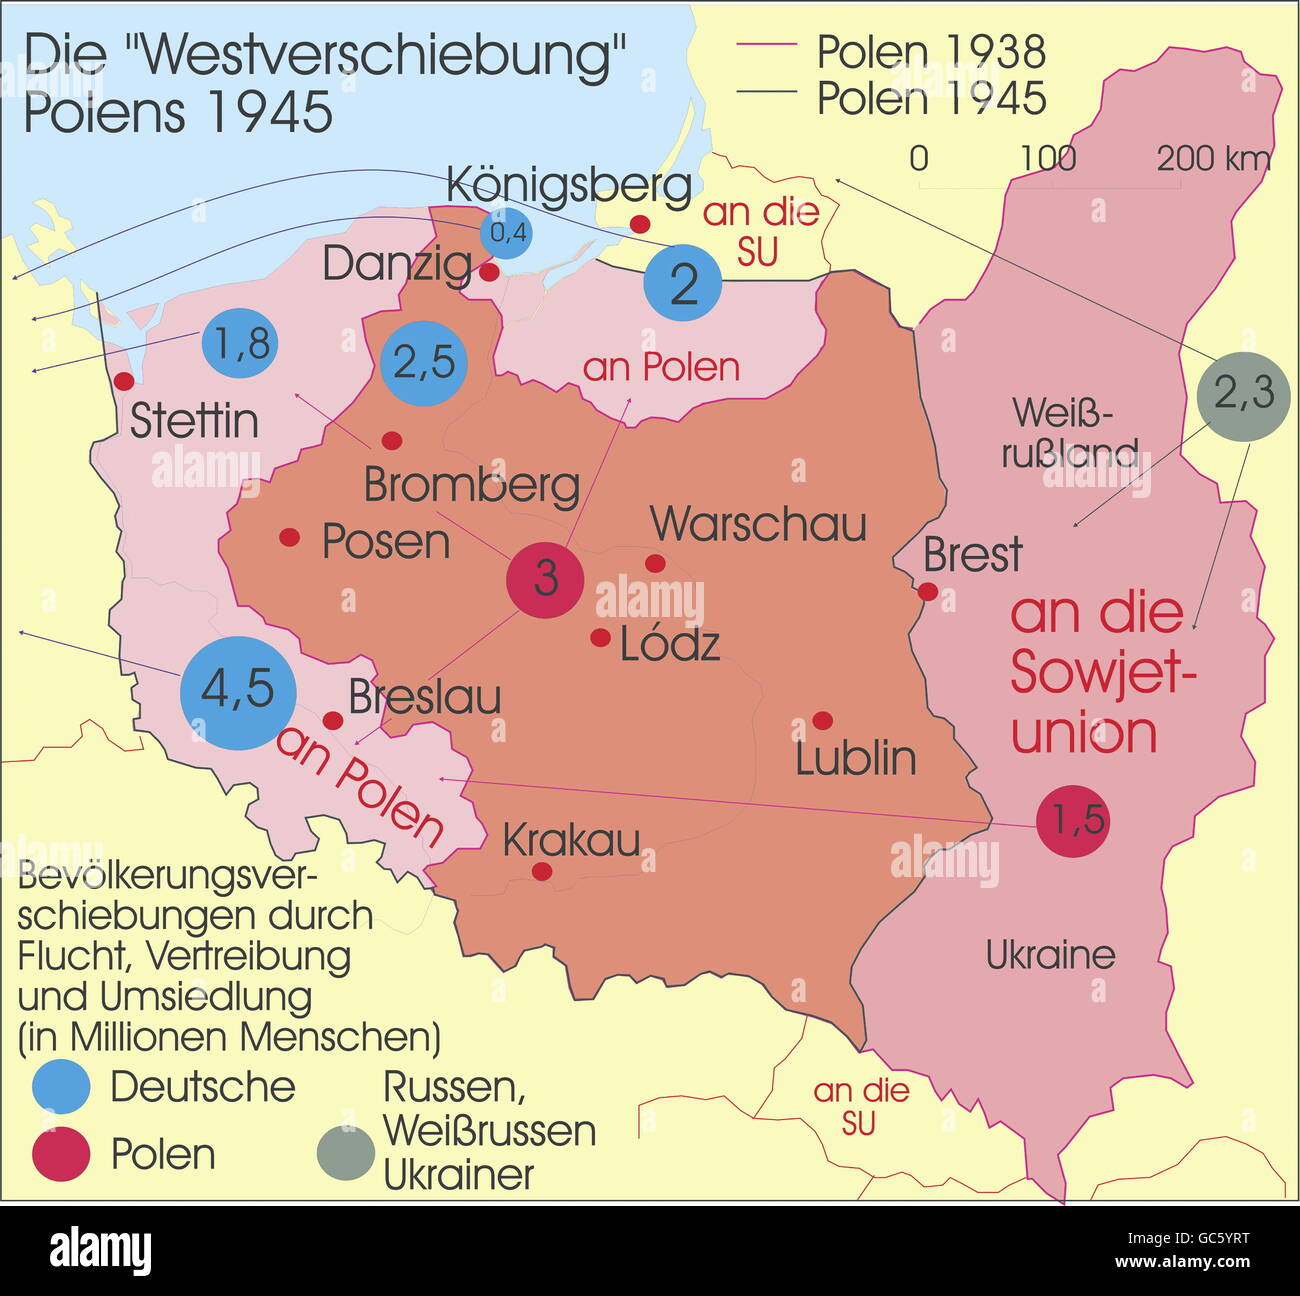 cartography, historical maps, modern times, Poland, territorial ...